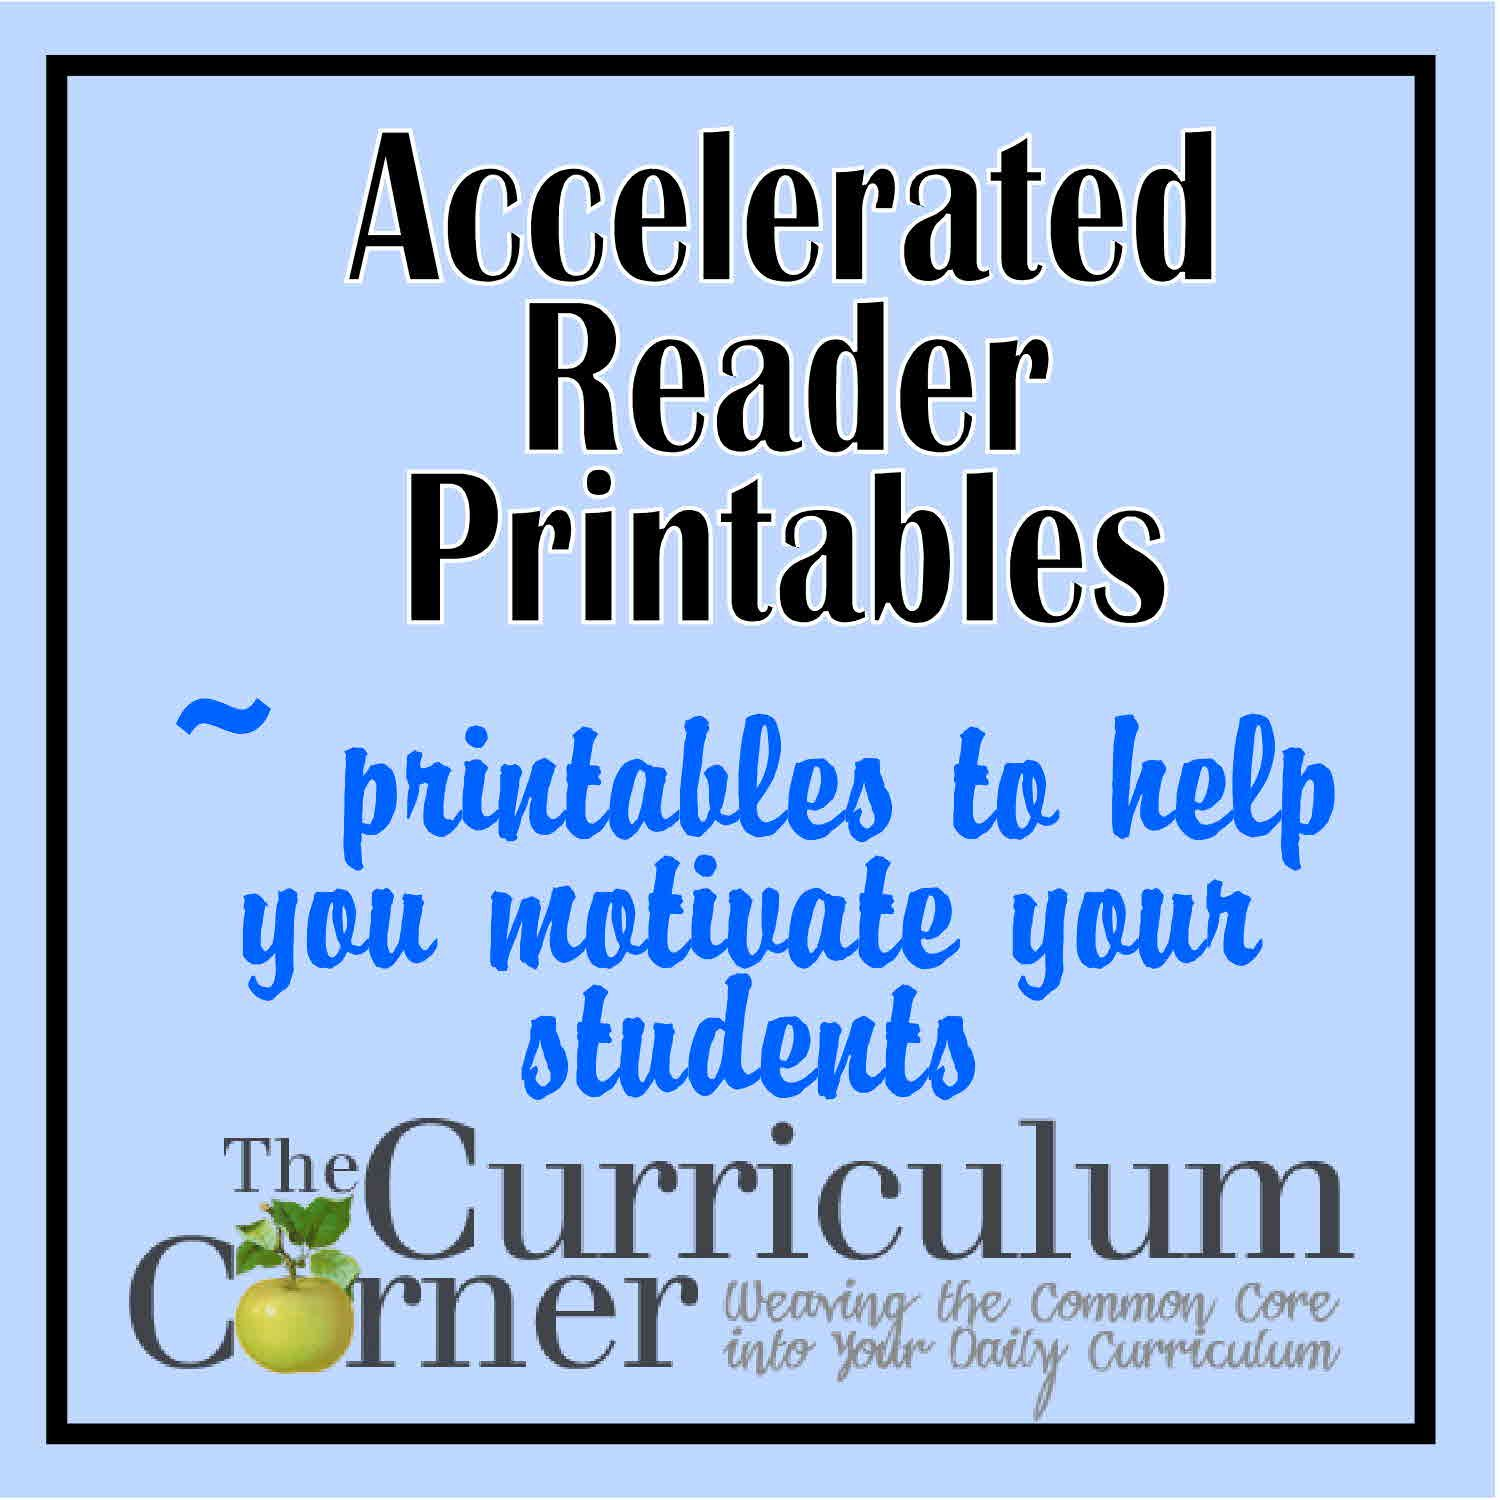 Accelerated Reader Printables